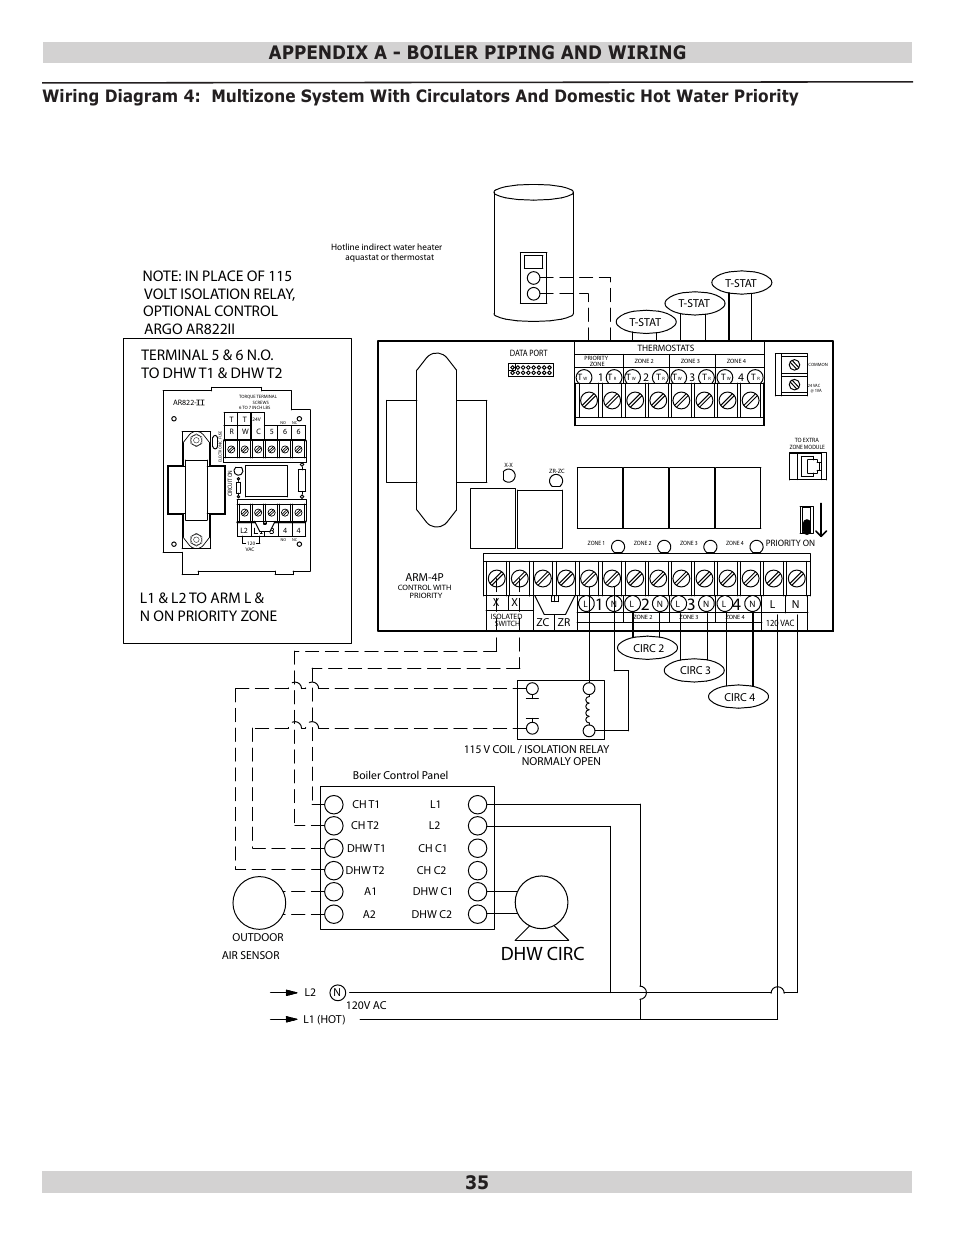 hight resolution of dhw circ appendix a boiler piping and wiring dunkirk q95m 200 modulating condensing boiler user manual page 35 52